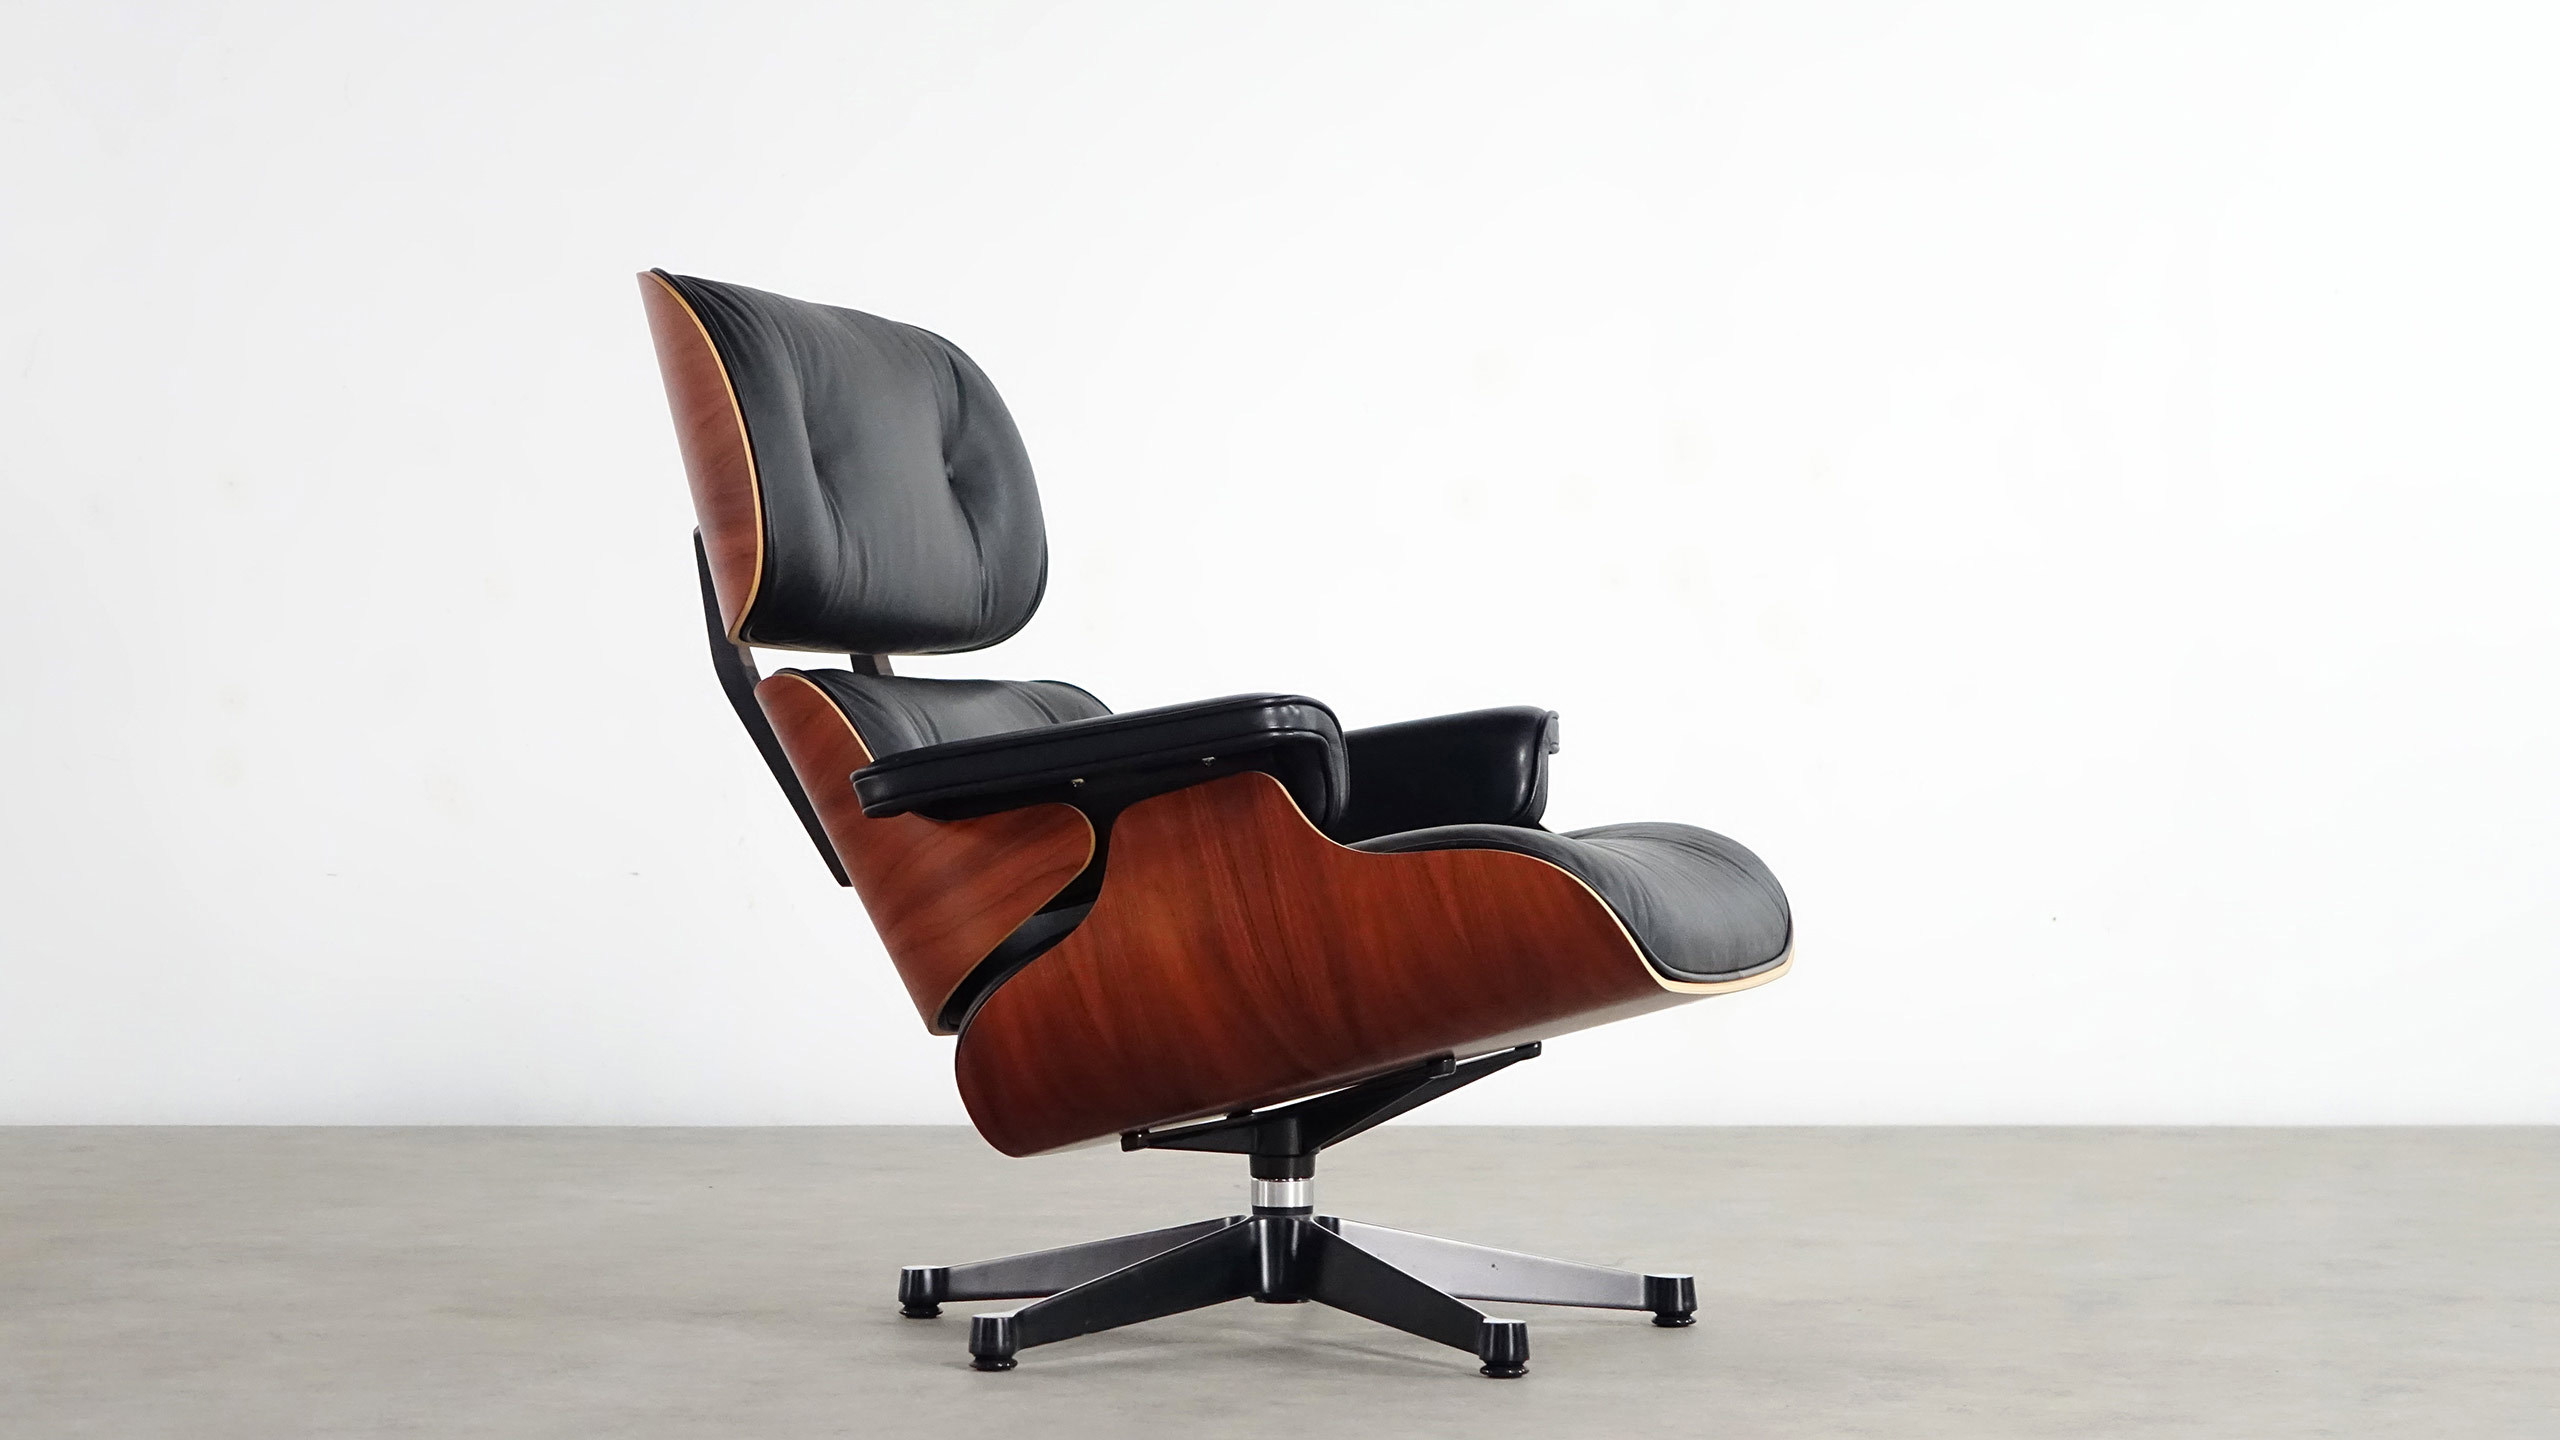 Charles eames original chair design ideas charles eames for Eames lounge sessel nachbau